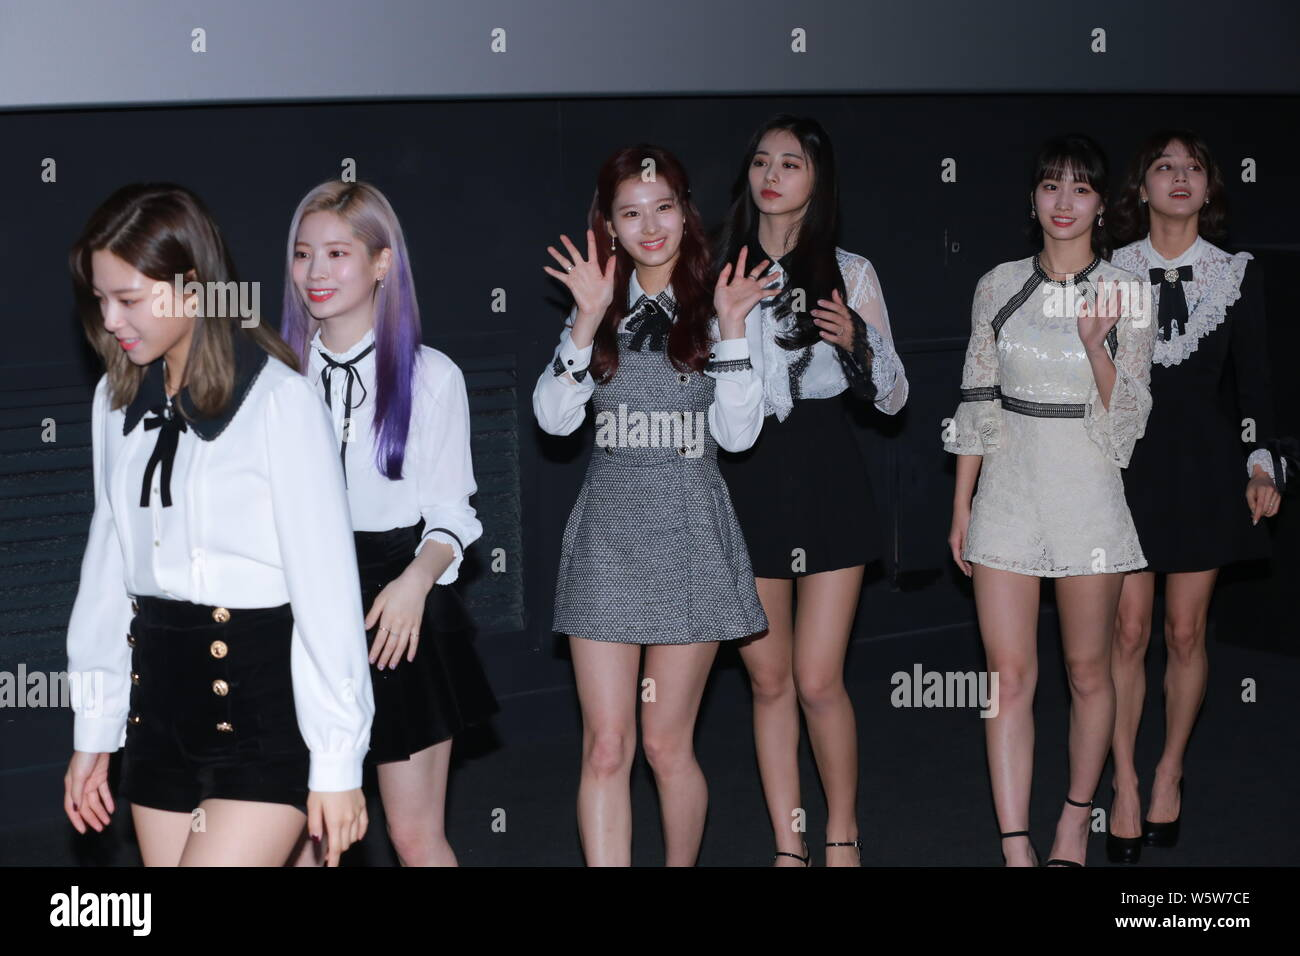 members of south korean girl group twice pose as they attend a press conference for the movie twiceland in seoul south korea 6 december 2018 stock photo alamy alamy